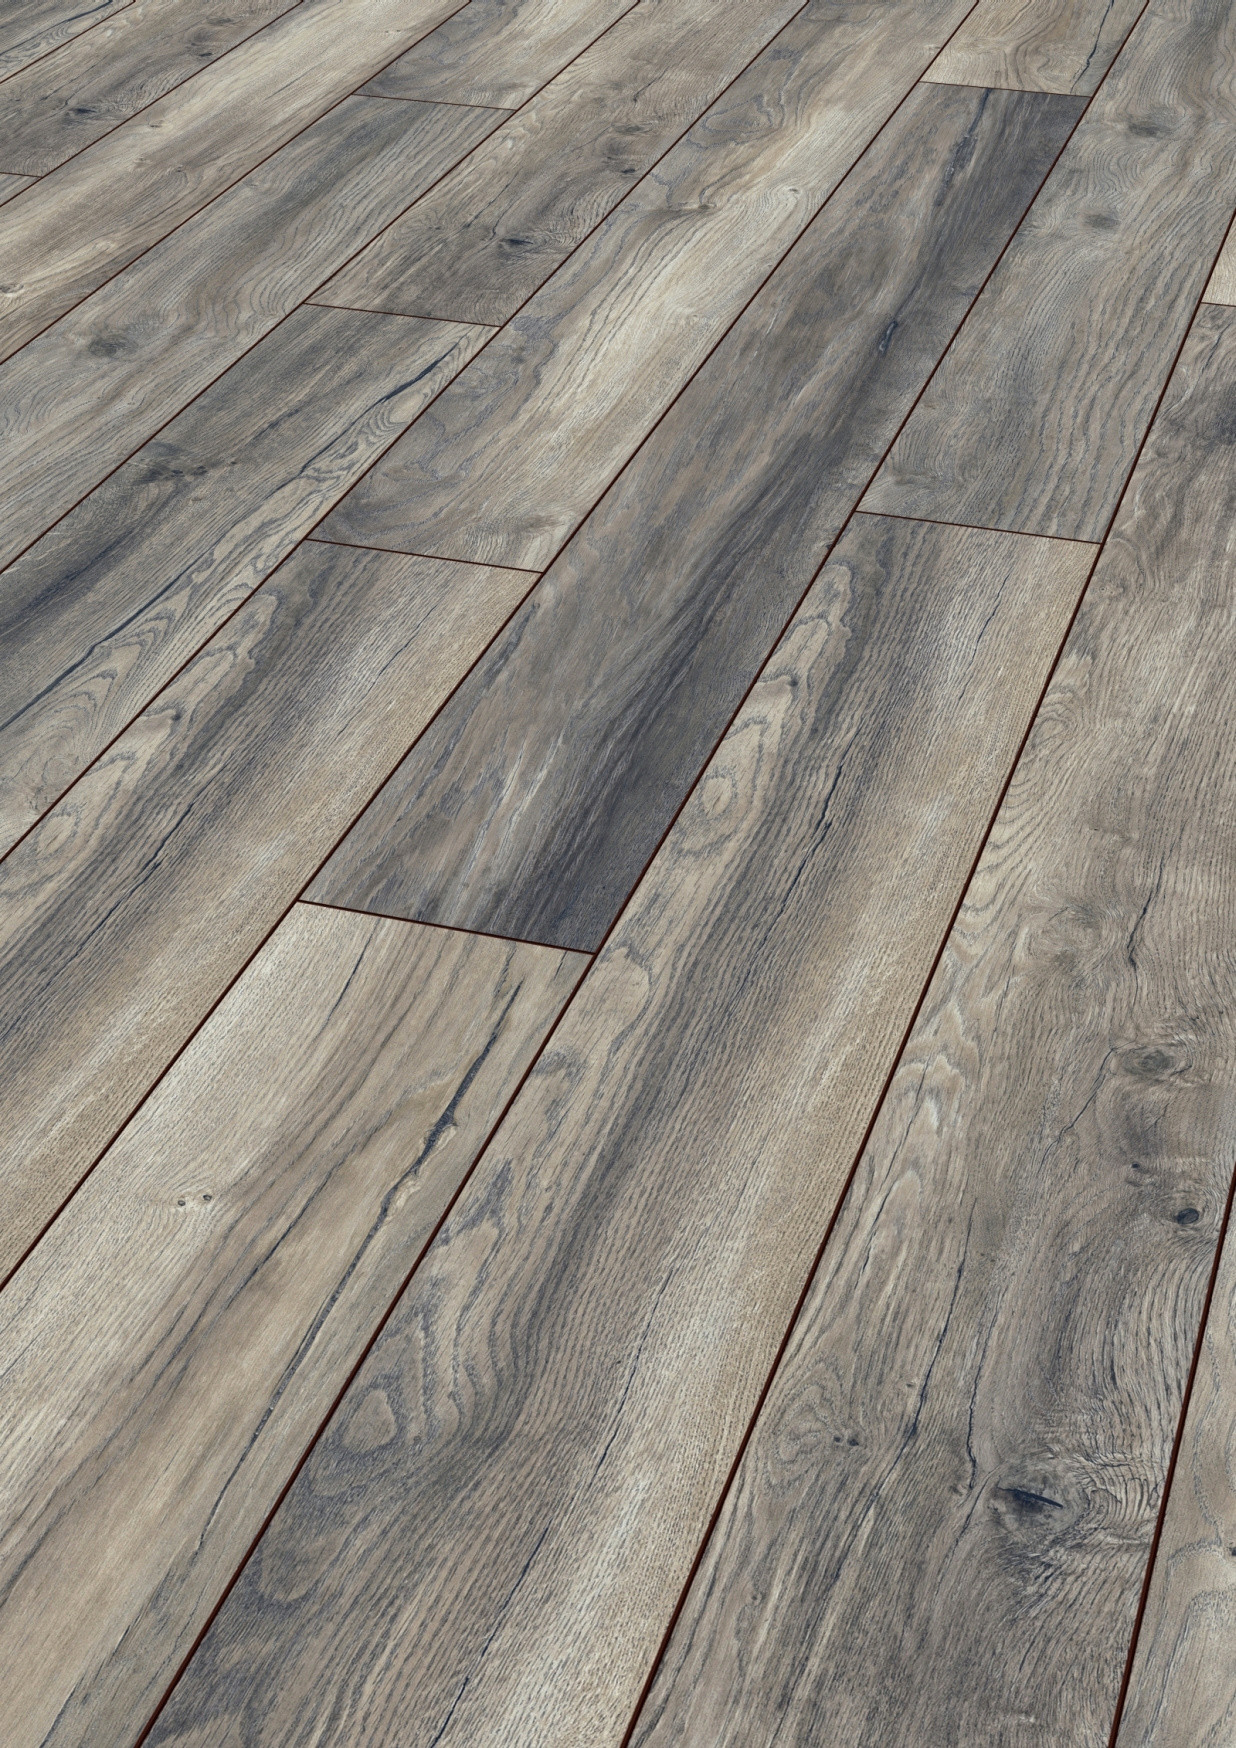 hardwood flooring prices toronto of 26 beautiful solid wood flooring wlcu with related posts